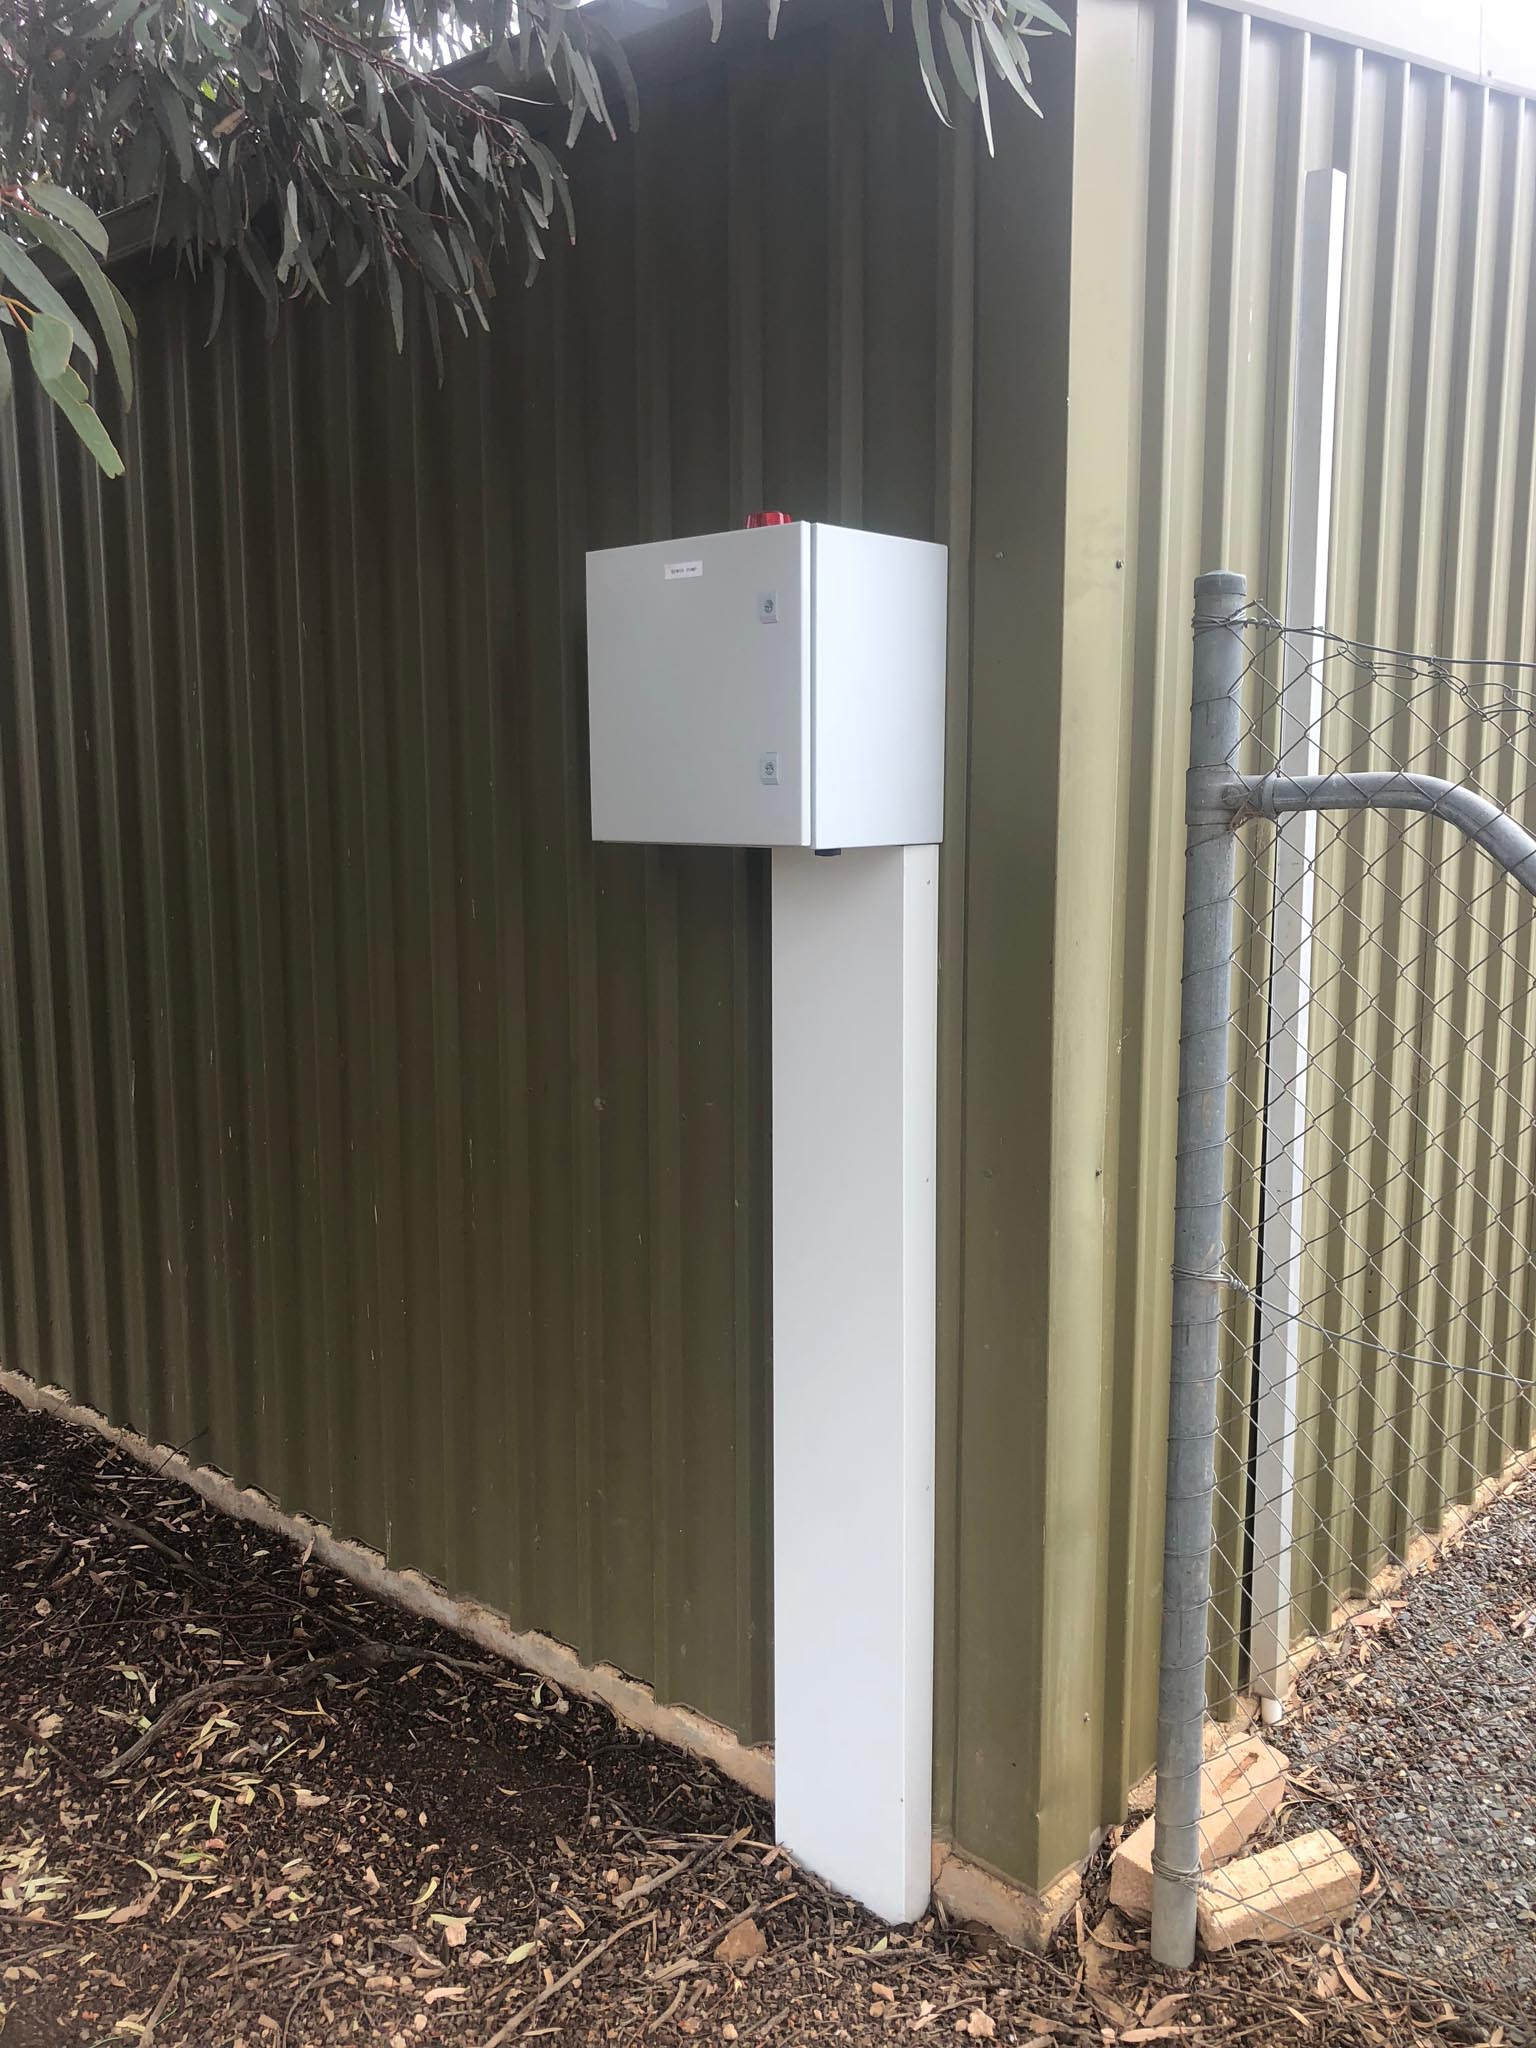 Sewer pump station design in NSW